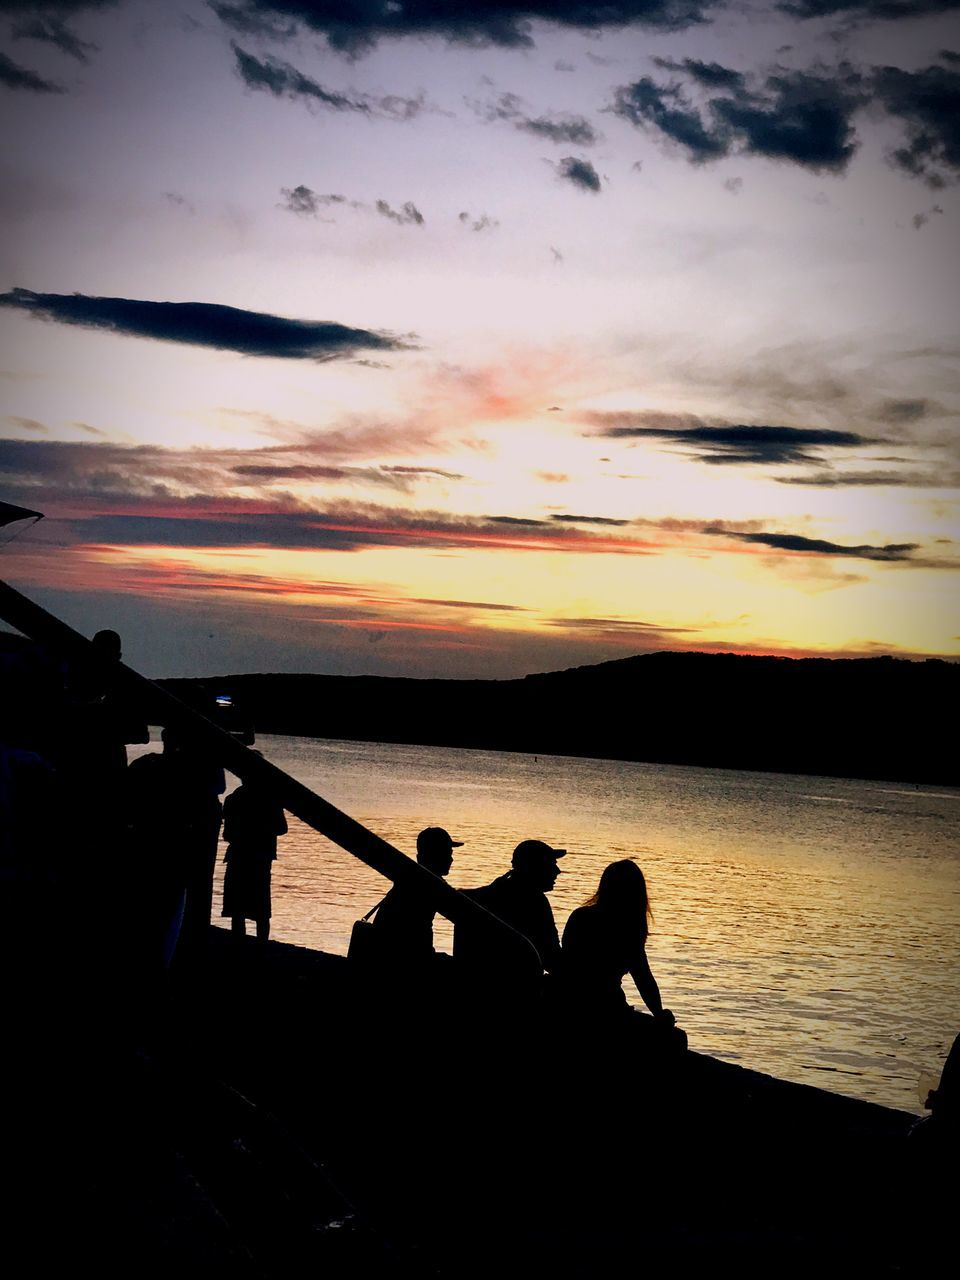 sunset, silhouette, water, sky, sitting, beauty in nature, nature, real people, cloud - sky, scenics, men, sea, leisure activity, outdoors, two people, togetherness, women, day, people